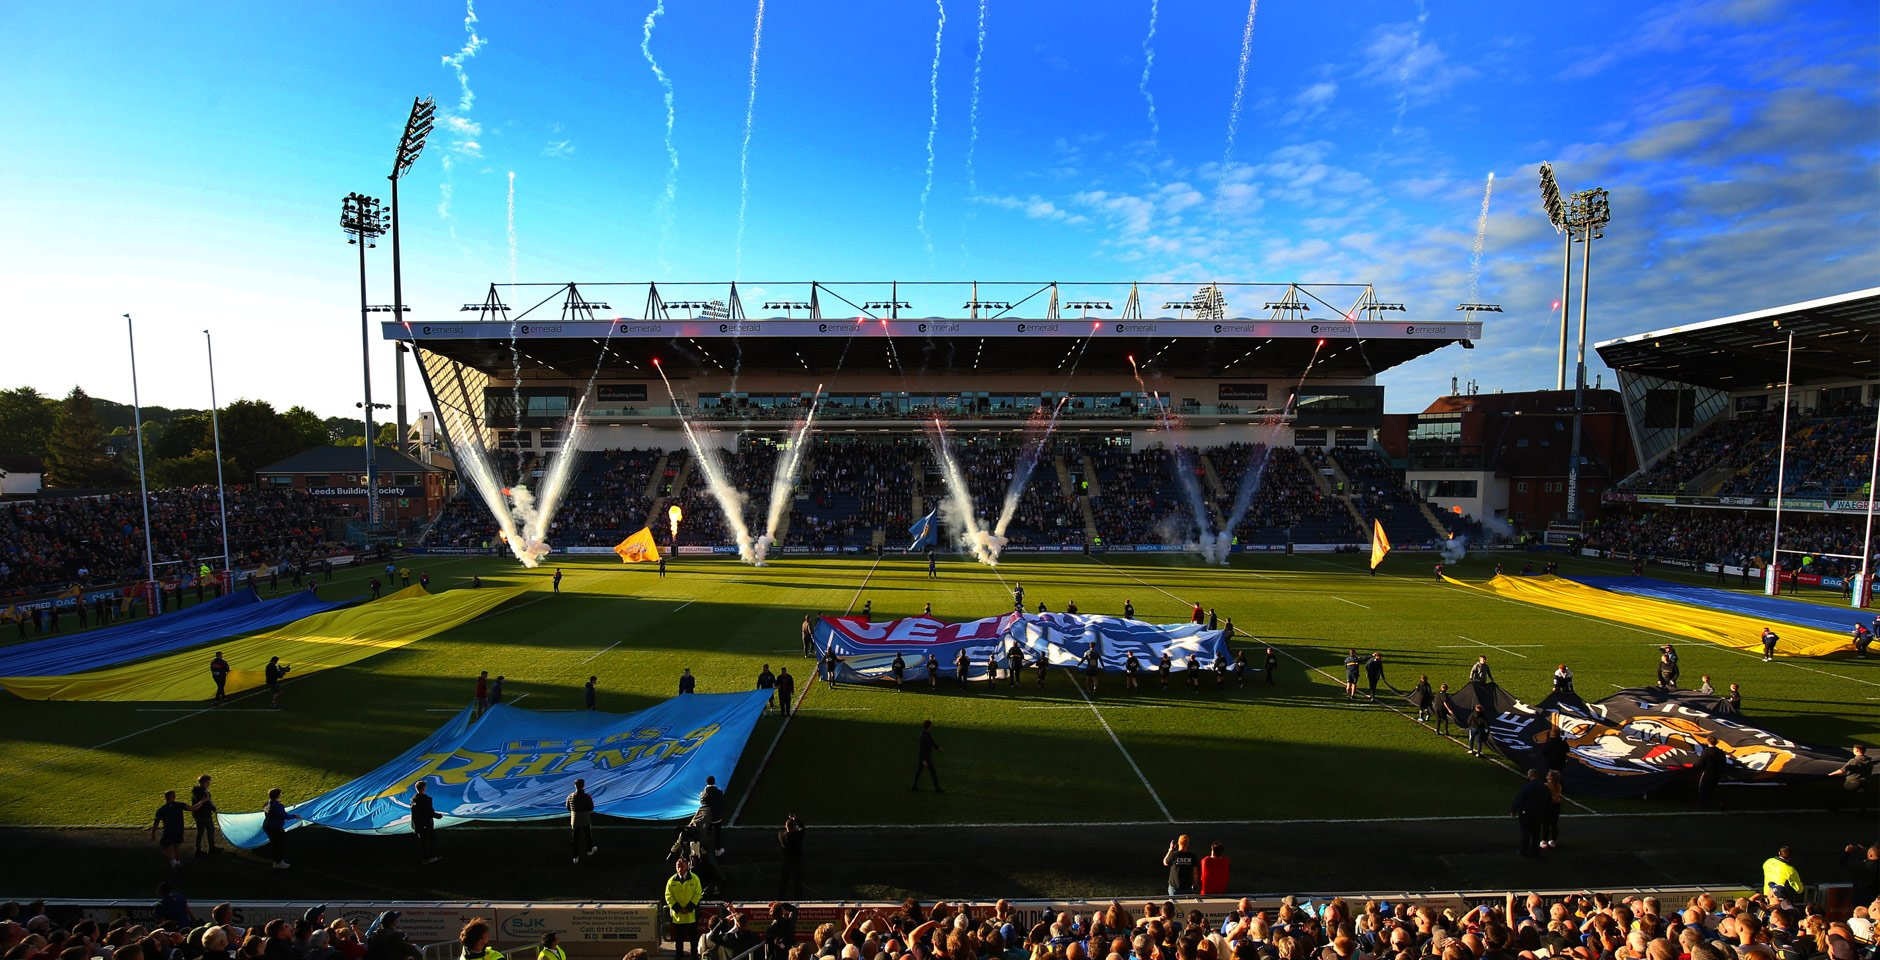 Headingley North / South Stand Rugby : Photograph by David Lindsay courtesy of Caddick Construction & Leeds Rugby